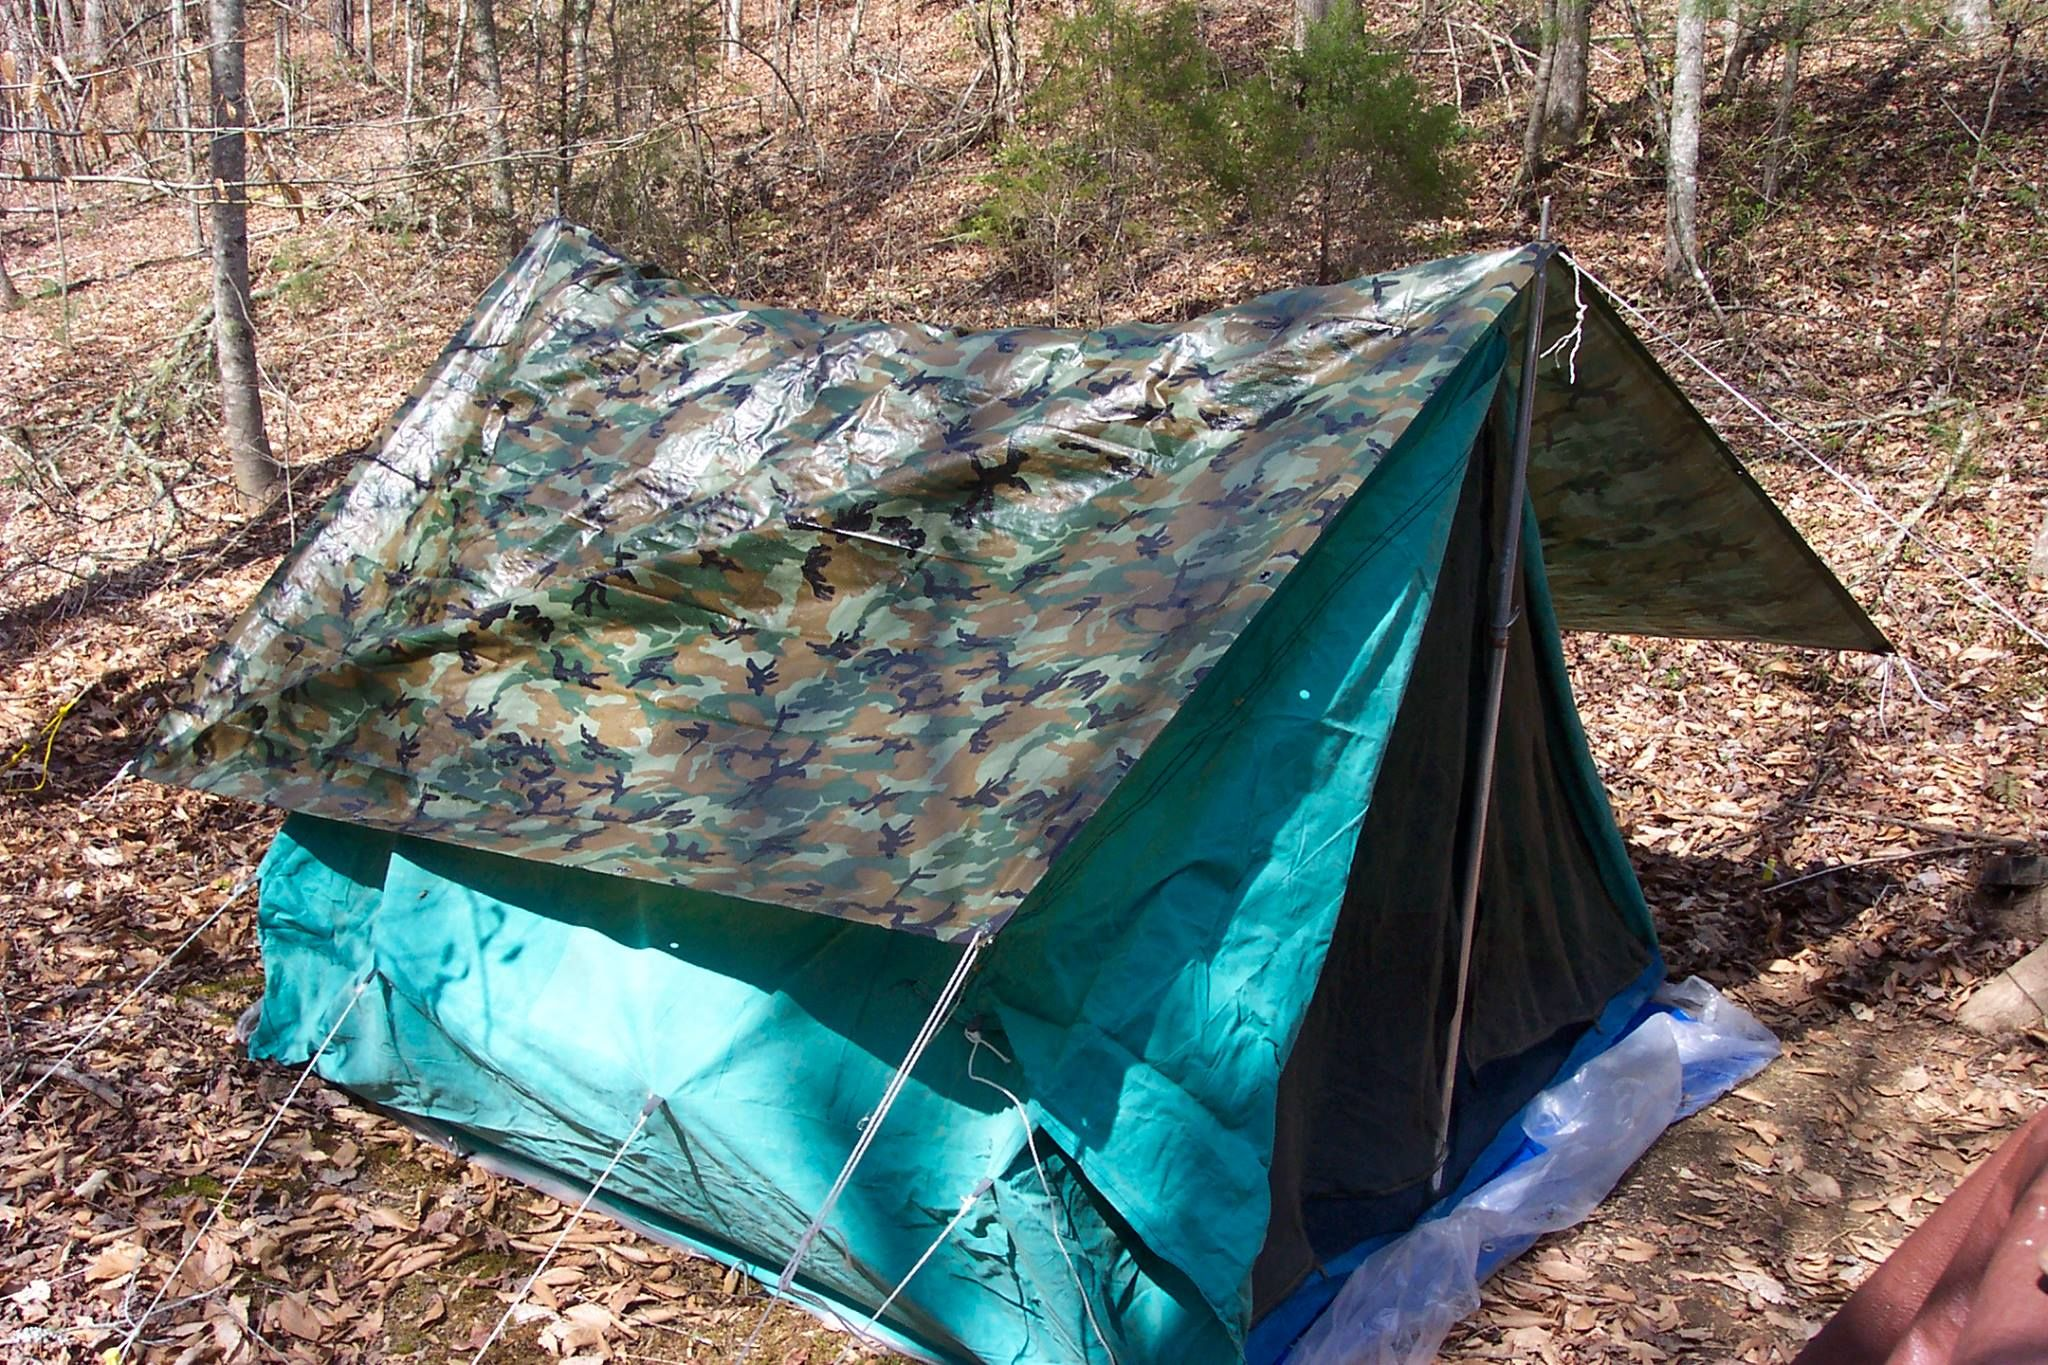 Camping in NC woods